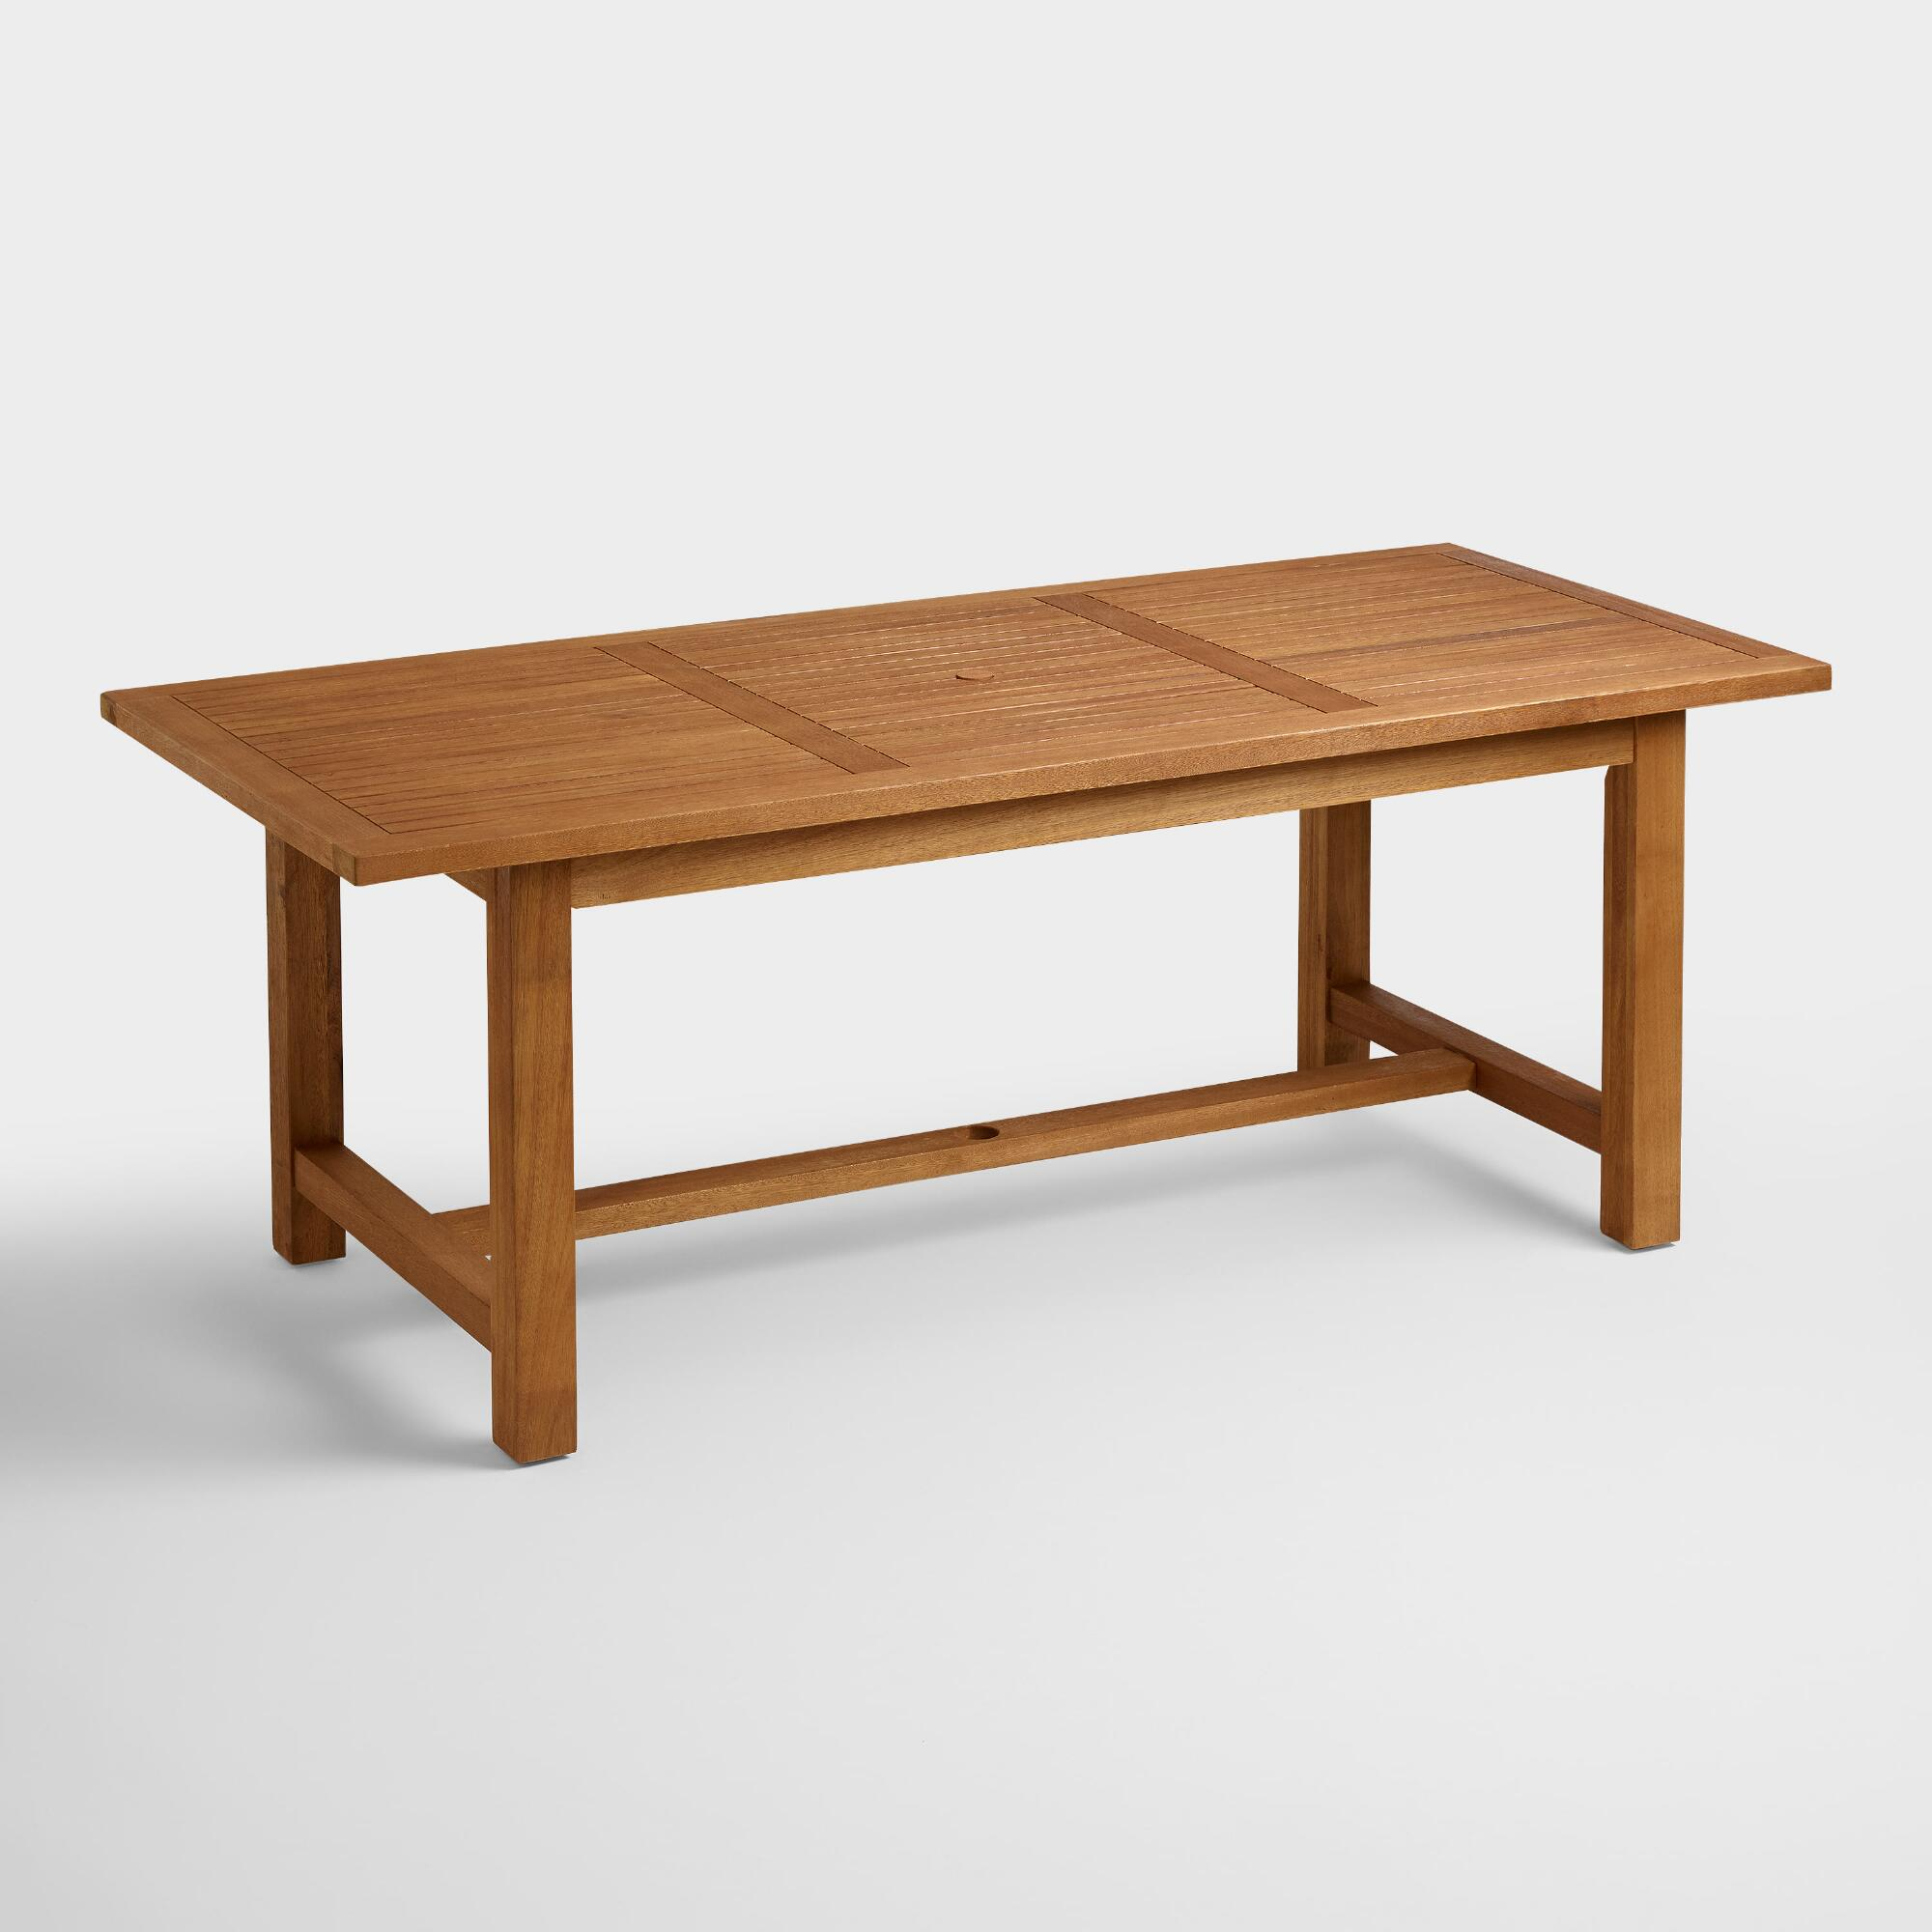 Wood praiano outdoor dining table world market for Hardwood furniture